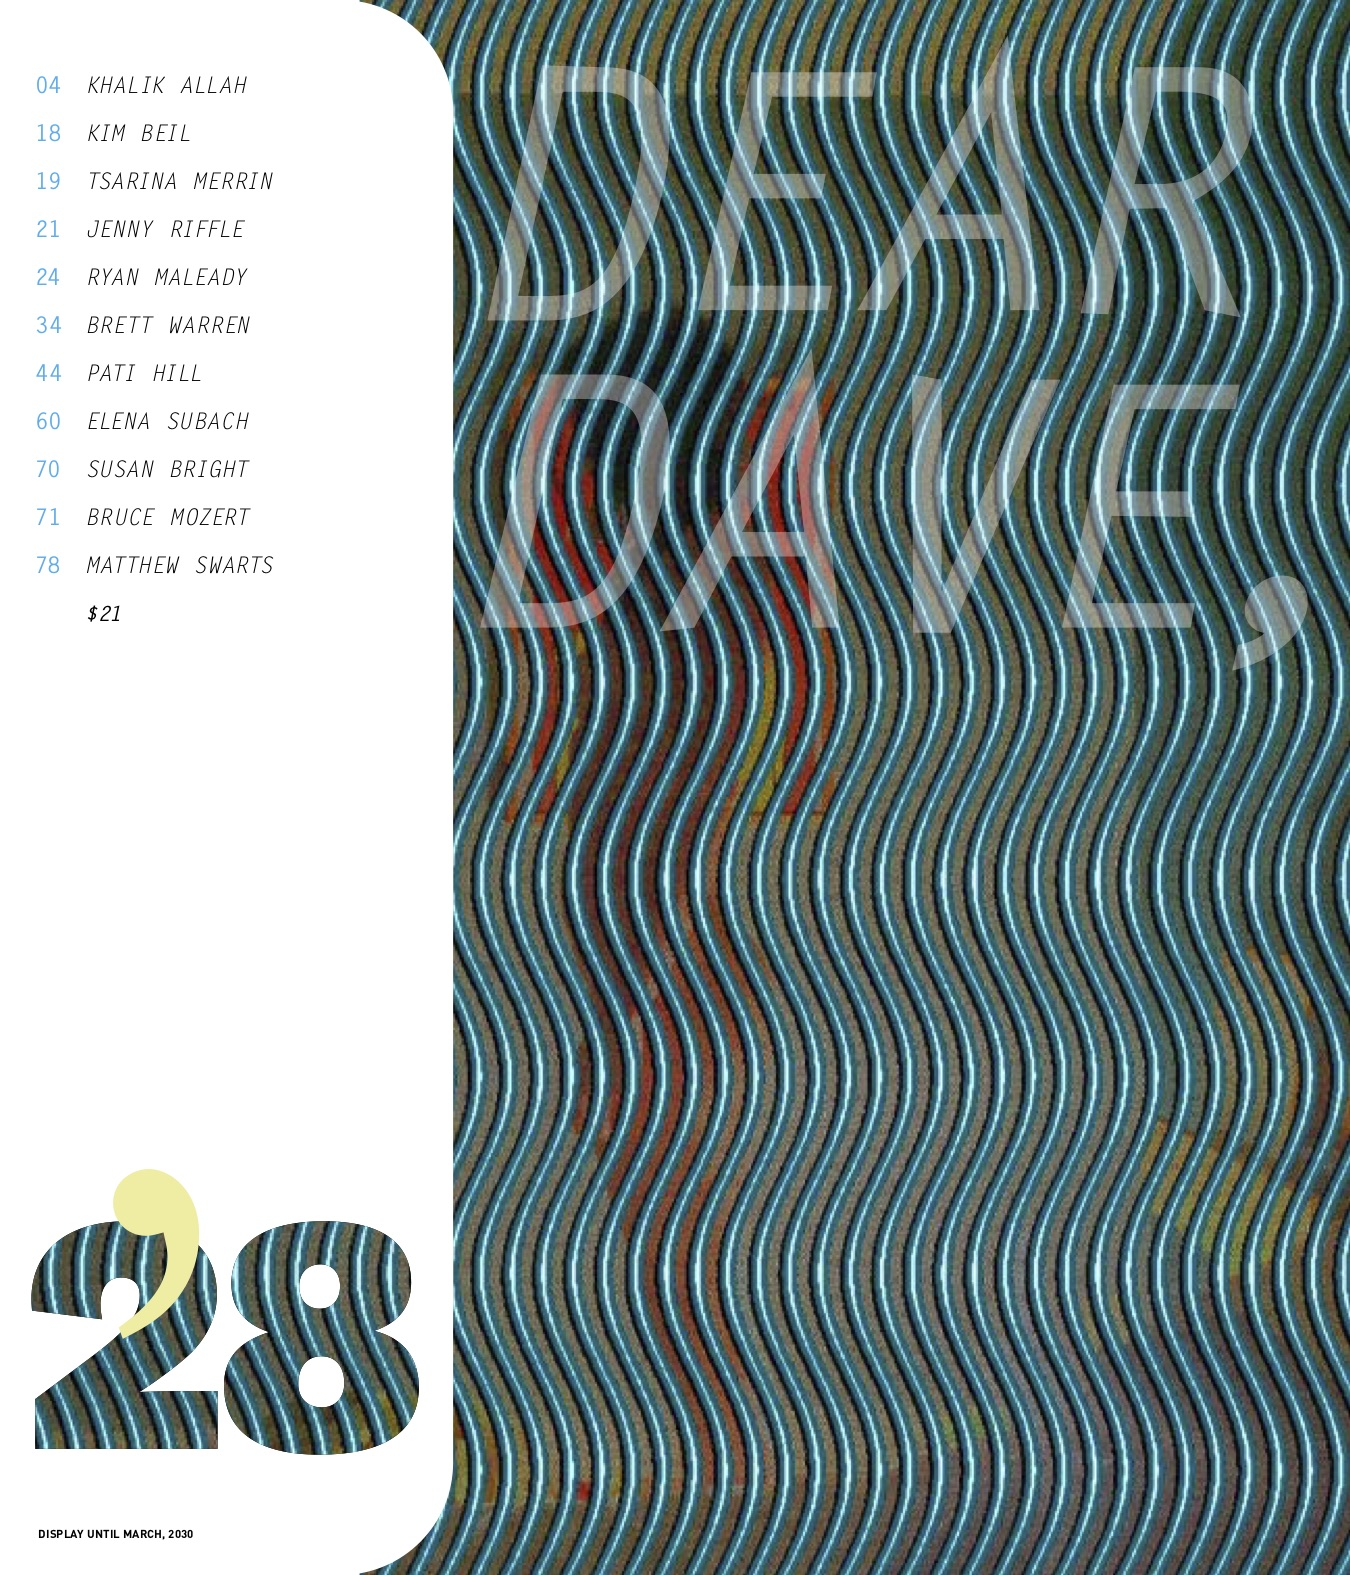 The cover of the 28th issue of Dear Dave.